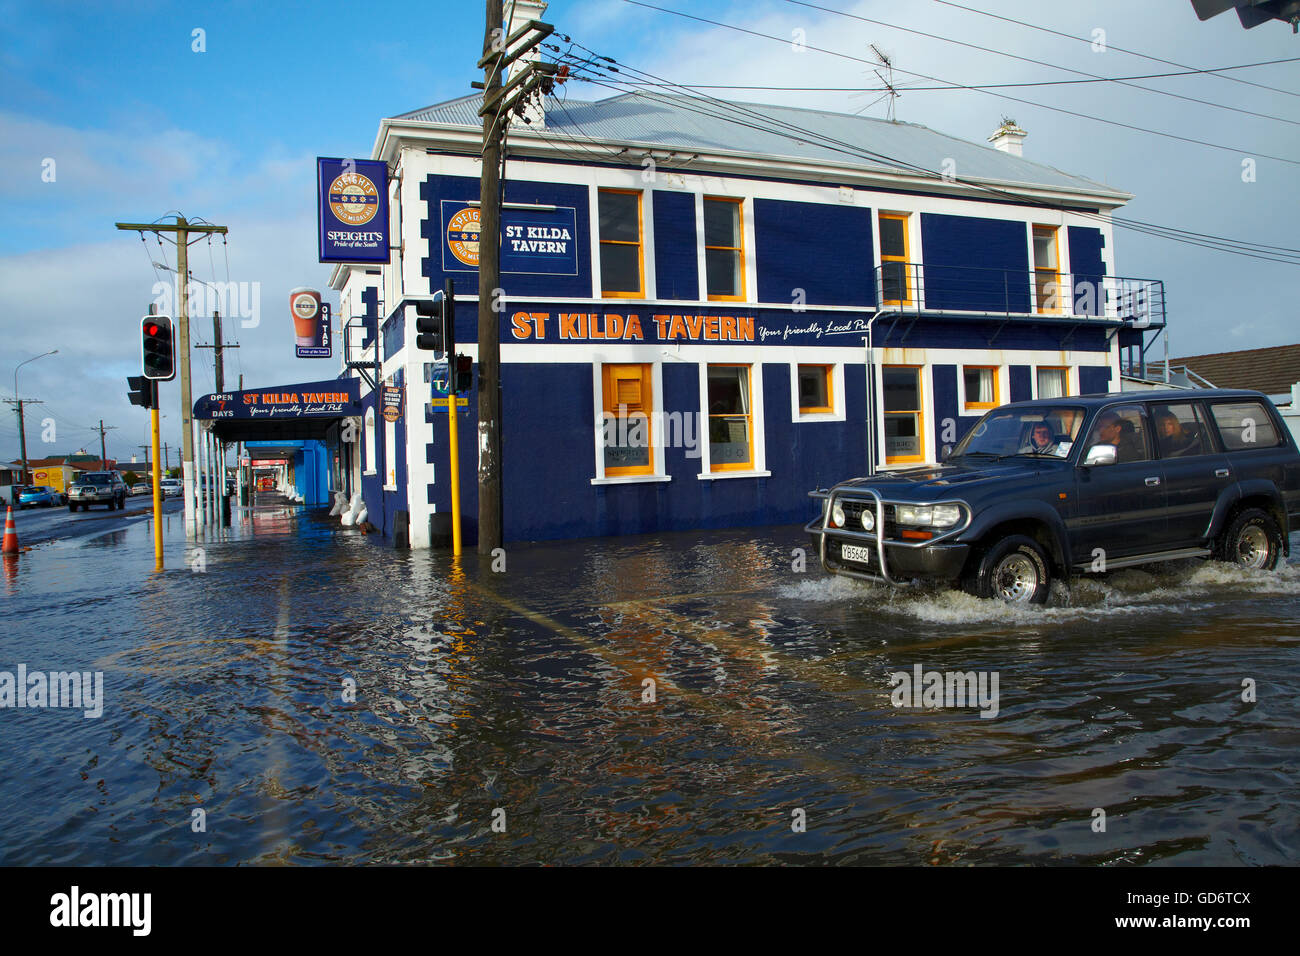 St Kilda Tavern during South Dunedin floods, Dunedin, South Island, New Zealand Stock Photo